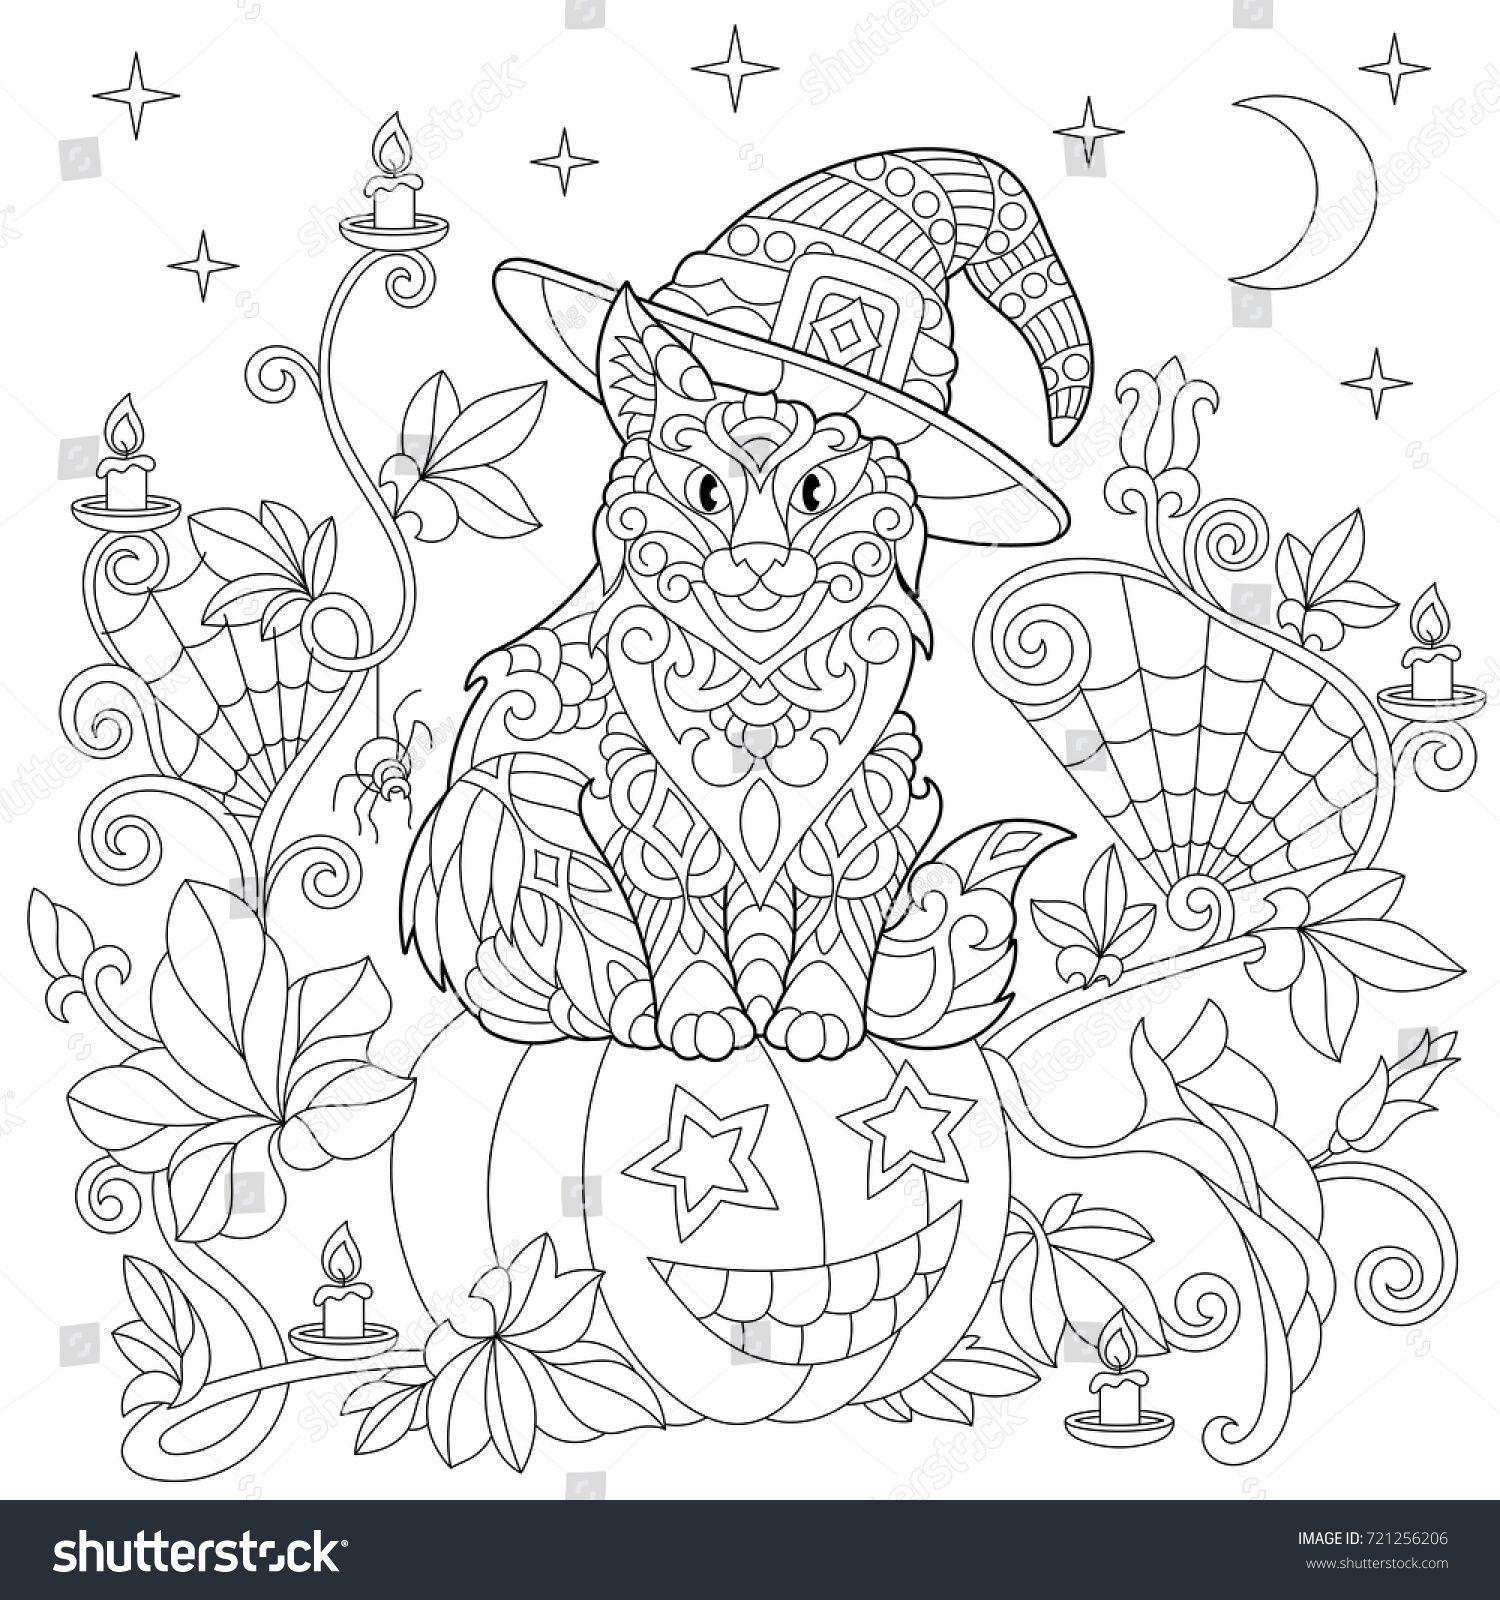 Halloween coloring page. Cat in a hat, halloween pumpkin, spider web ...